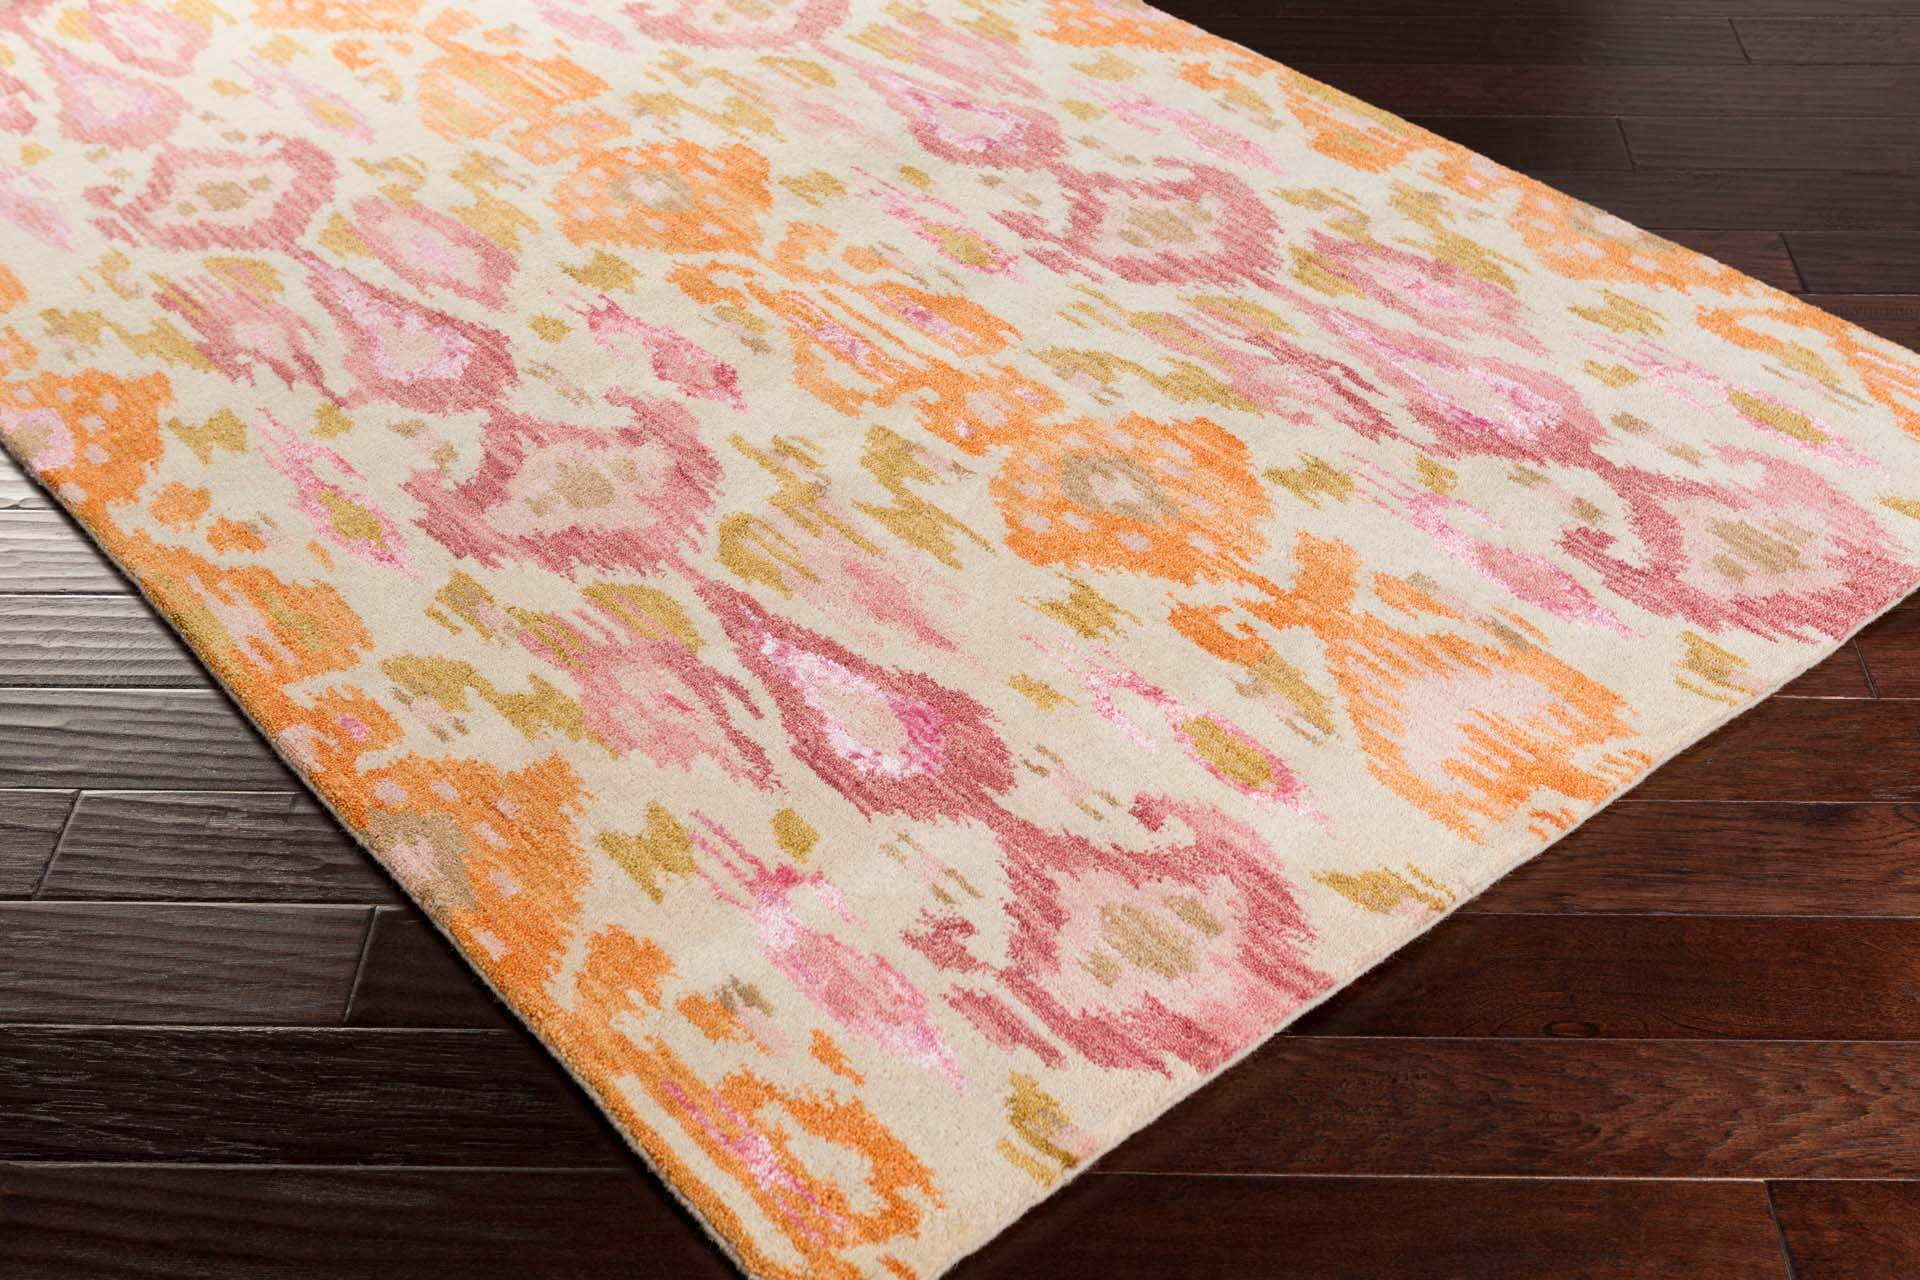 Contemporary hand-tufted area rug from India with bright yellow and pink pattern on wood floor